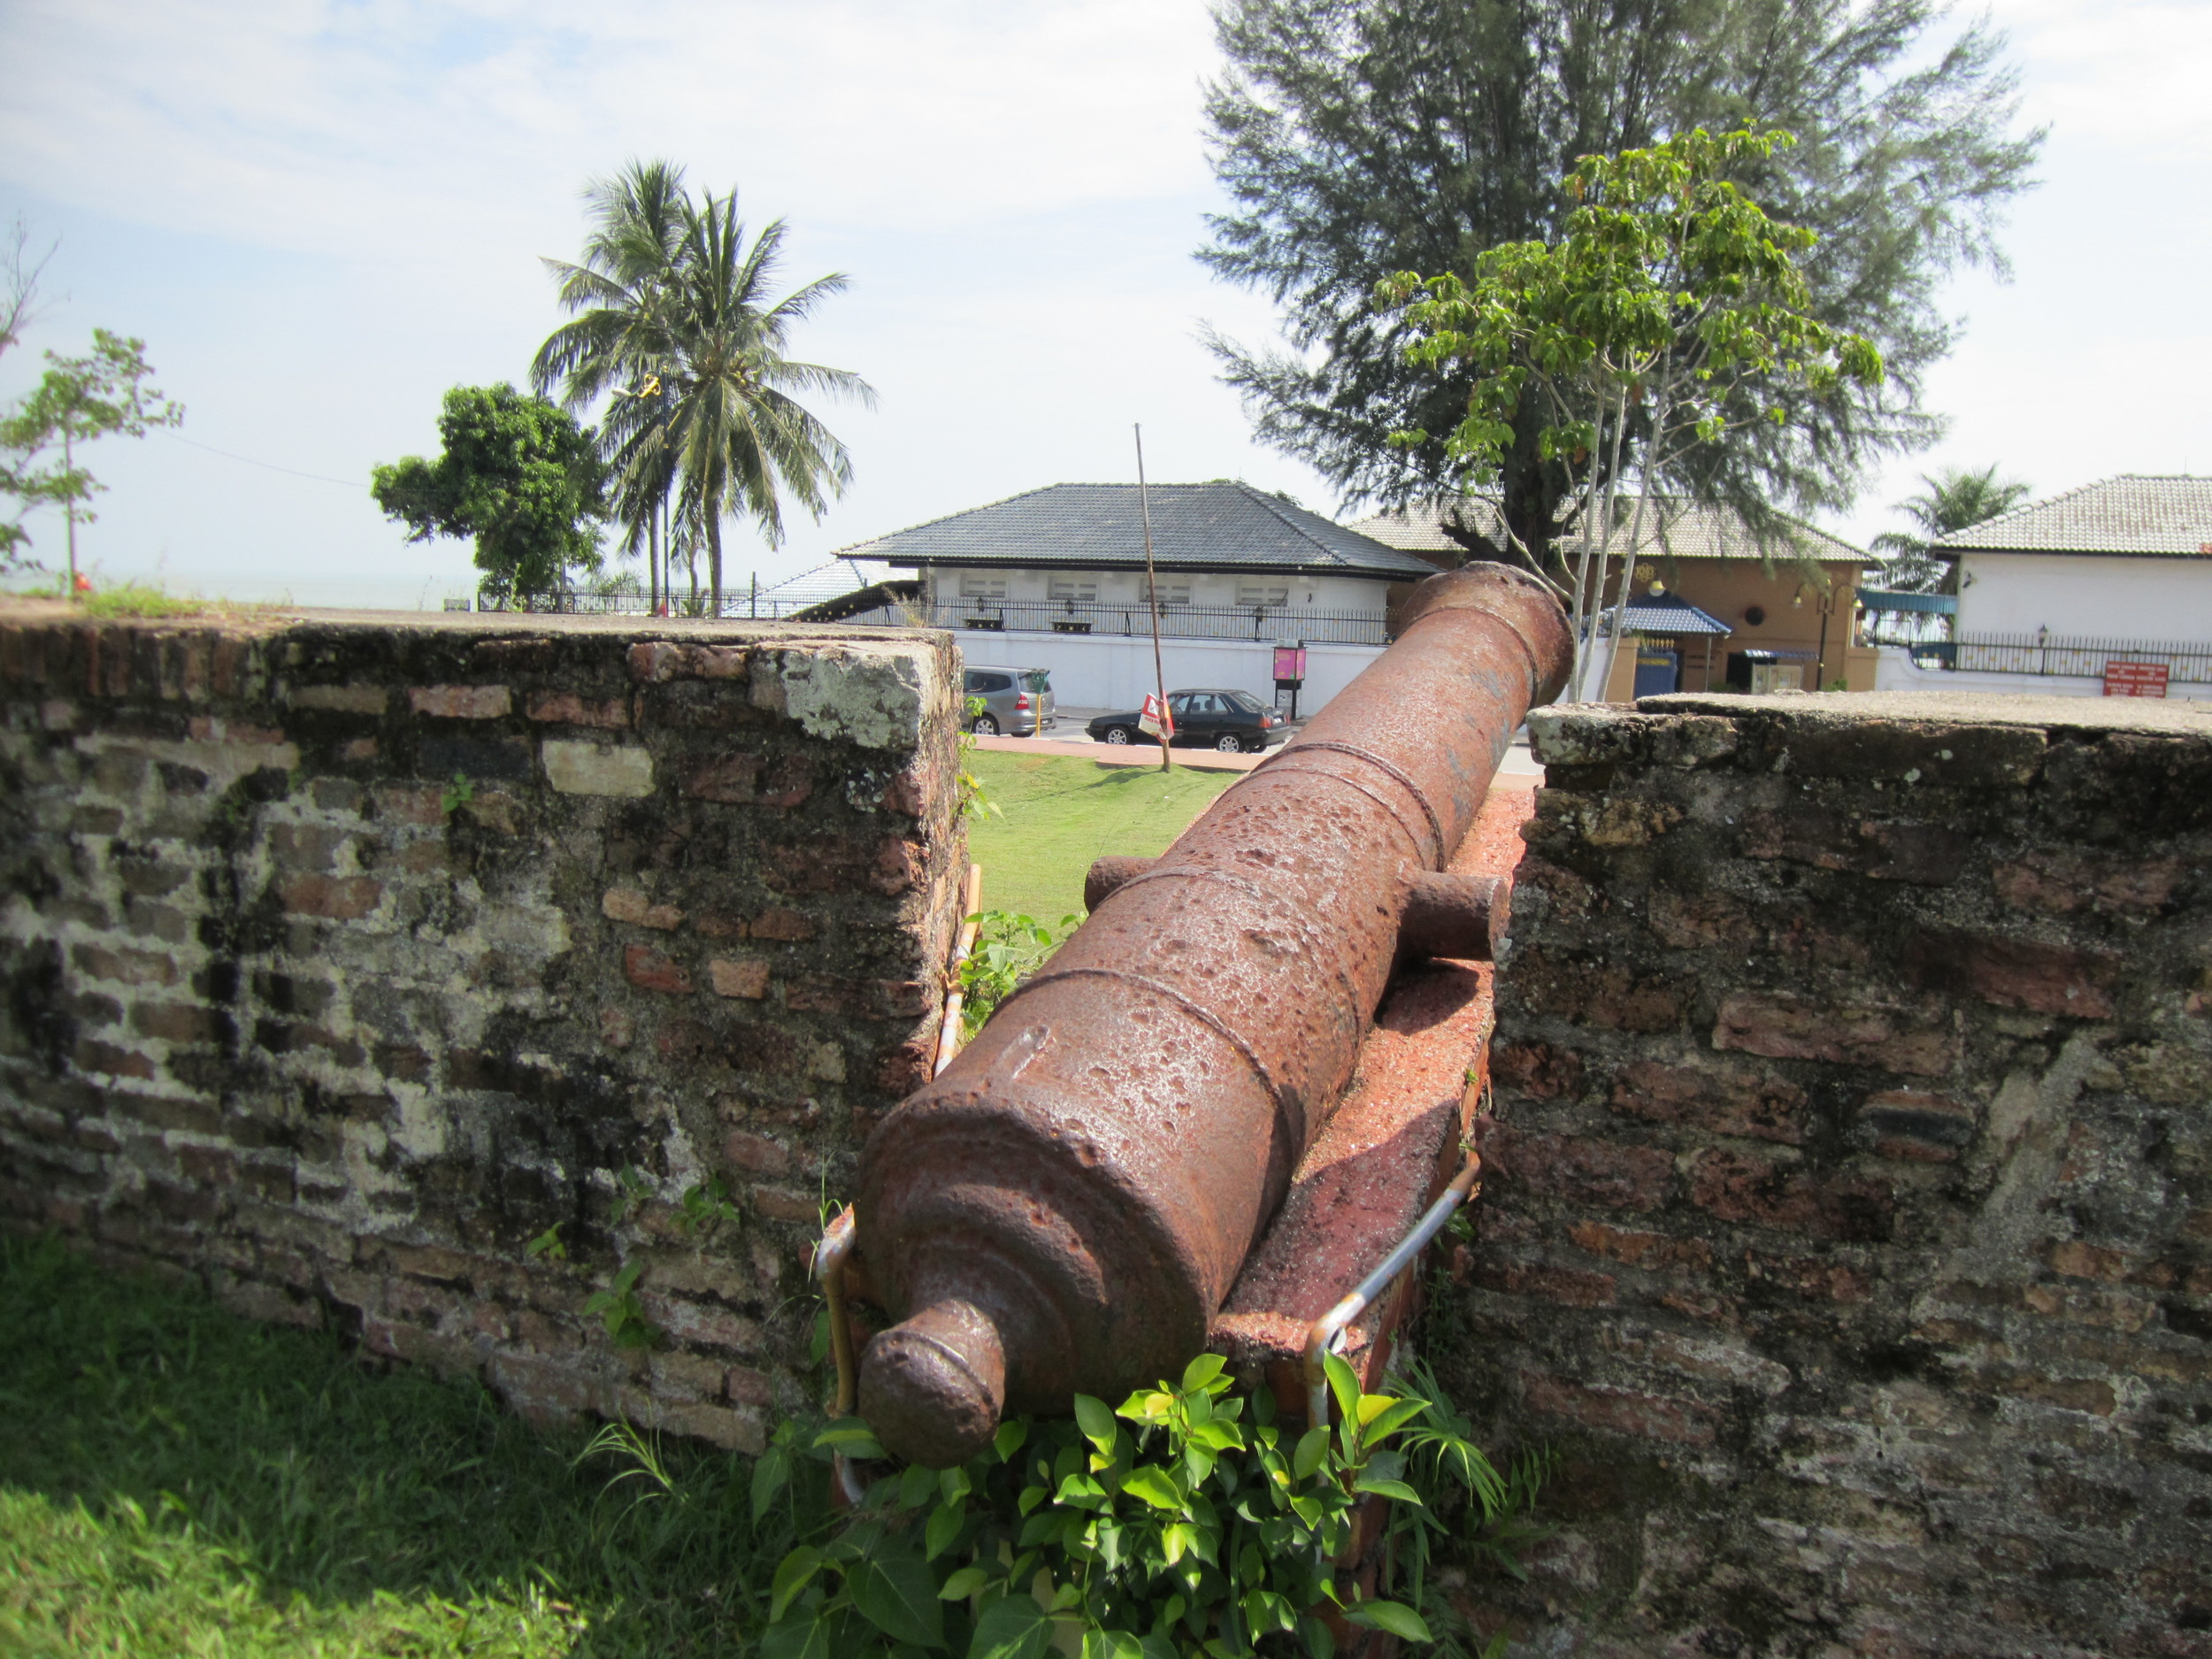 An 18th century cannon looks out protectively from Fort Cornwallis in Penang, Malaysia.  Tour the fort along with other amazing sites when you visit.